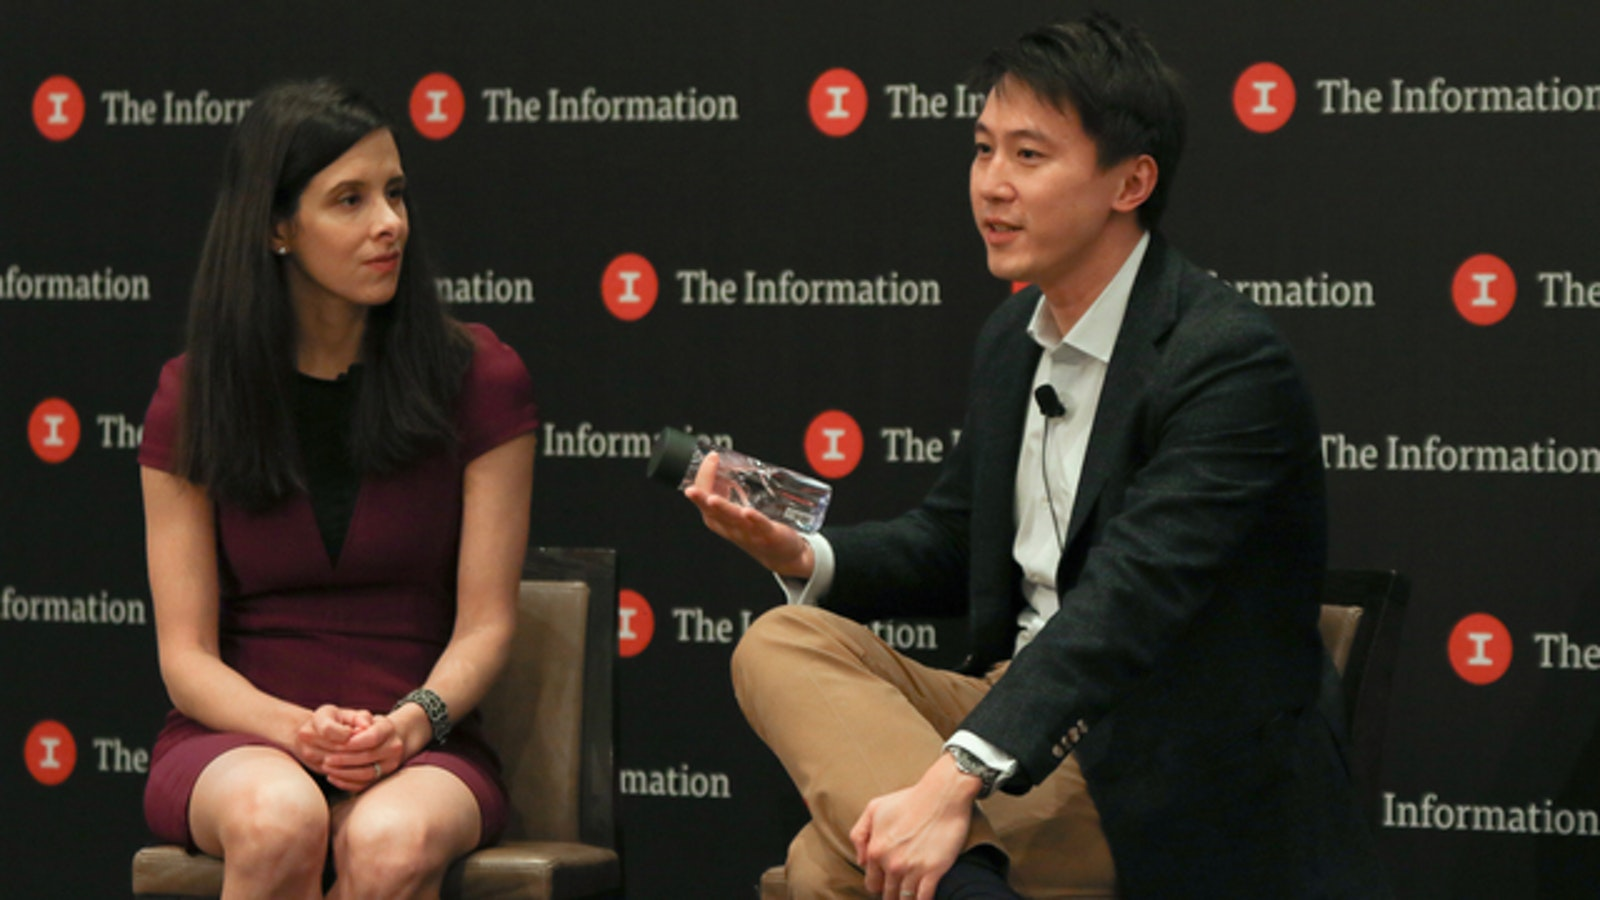 The Information's editor in chief Jessica Lessin with Xiaomi CFO Shou Zi Chew. Photo by Derry Ainsworth